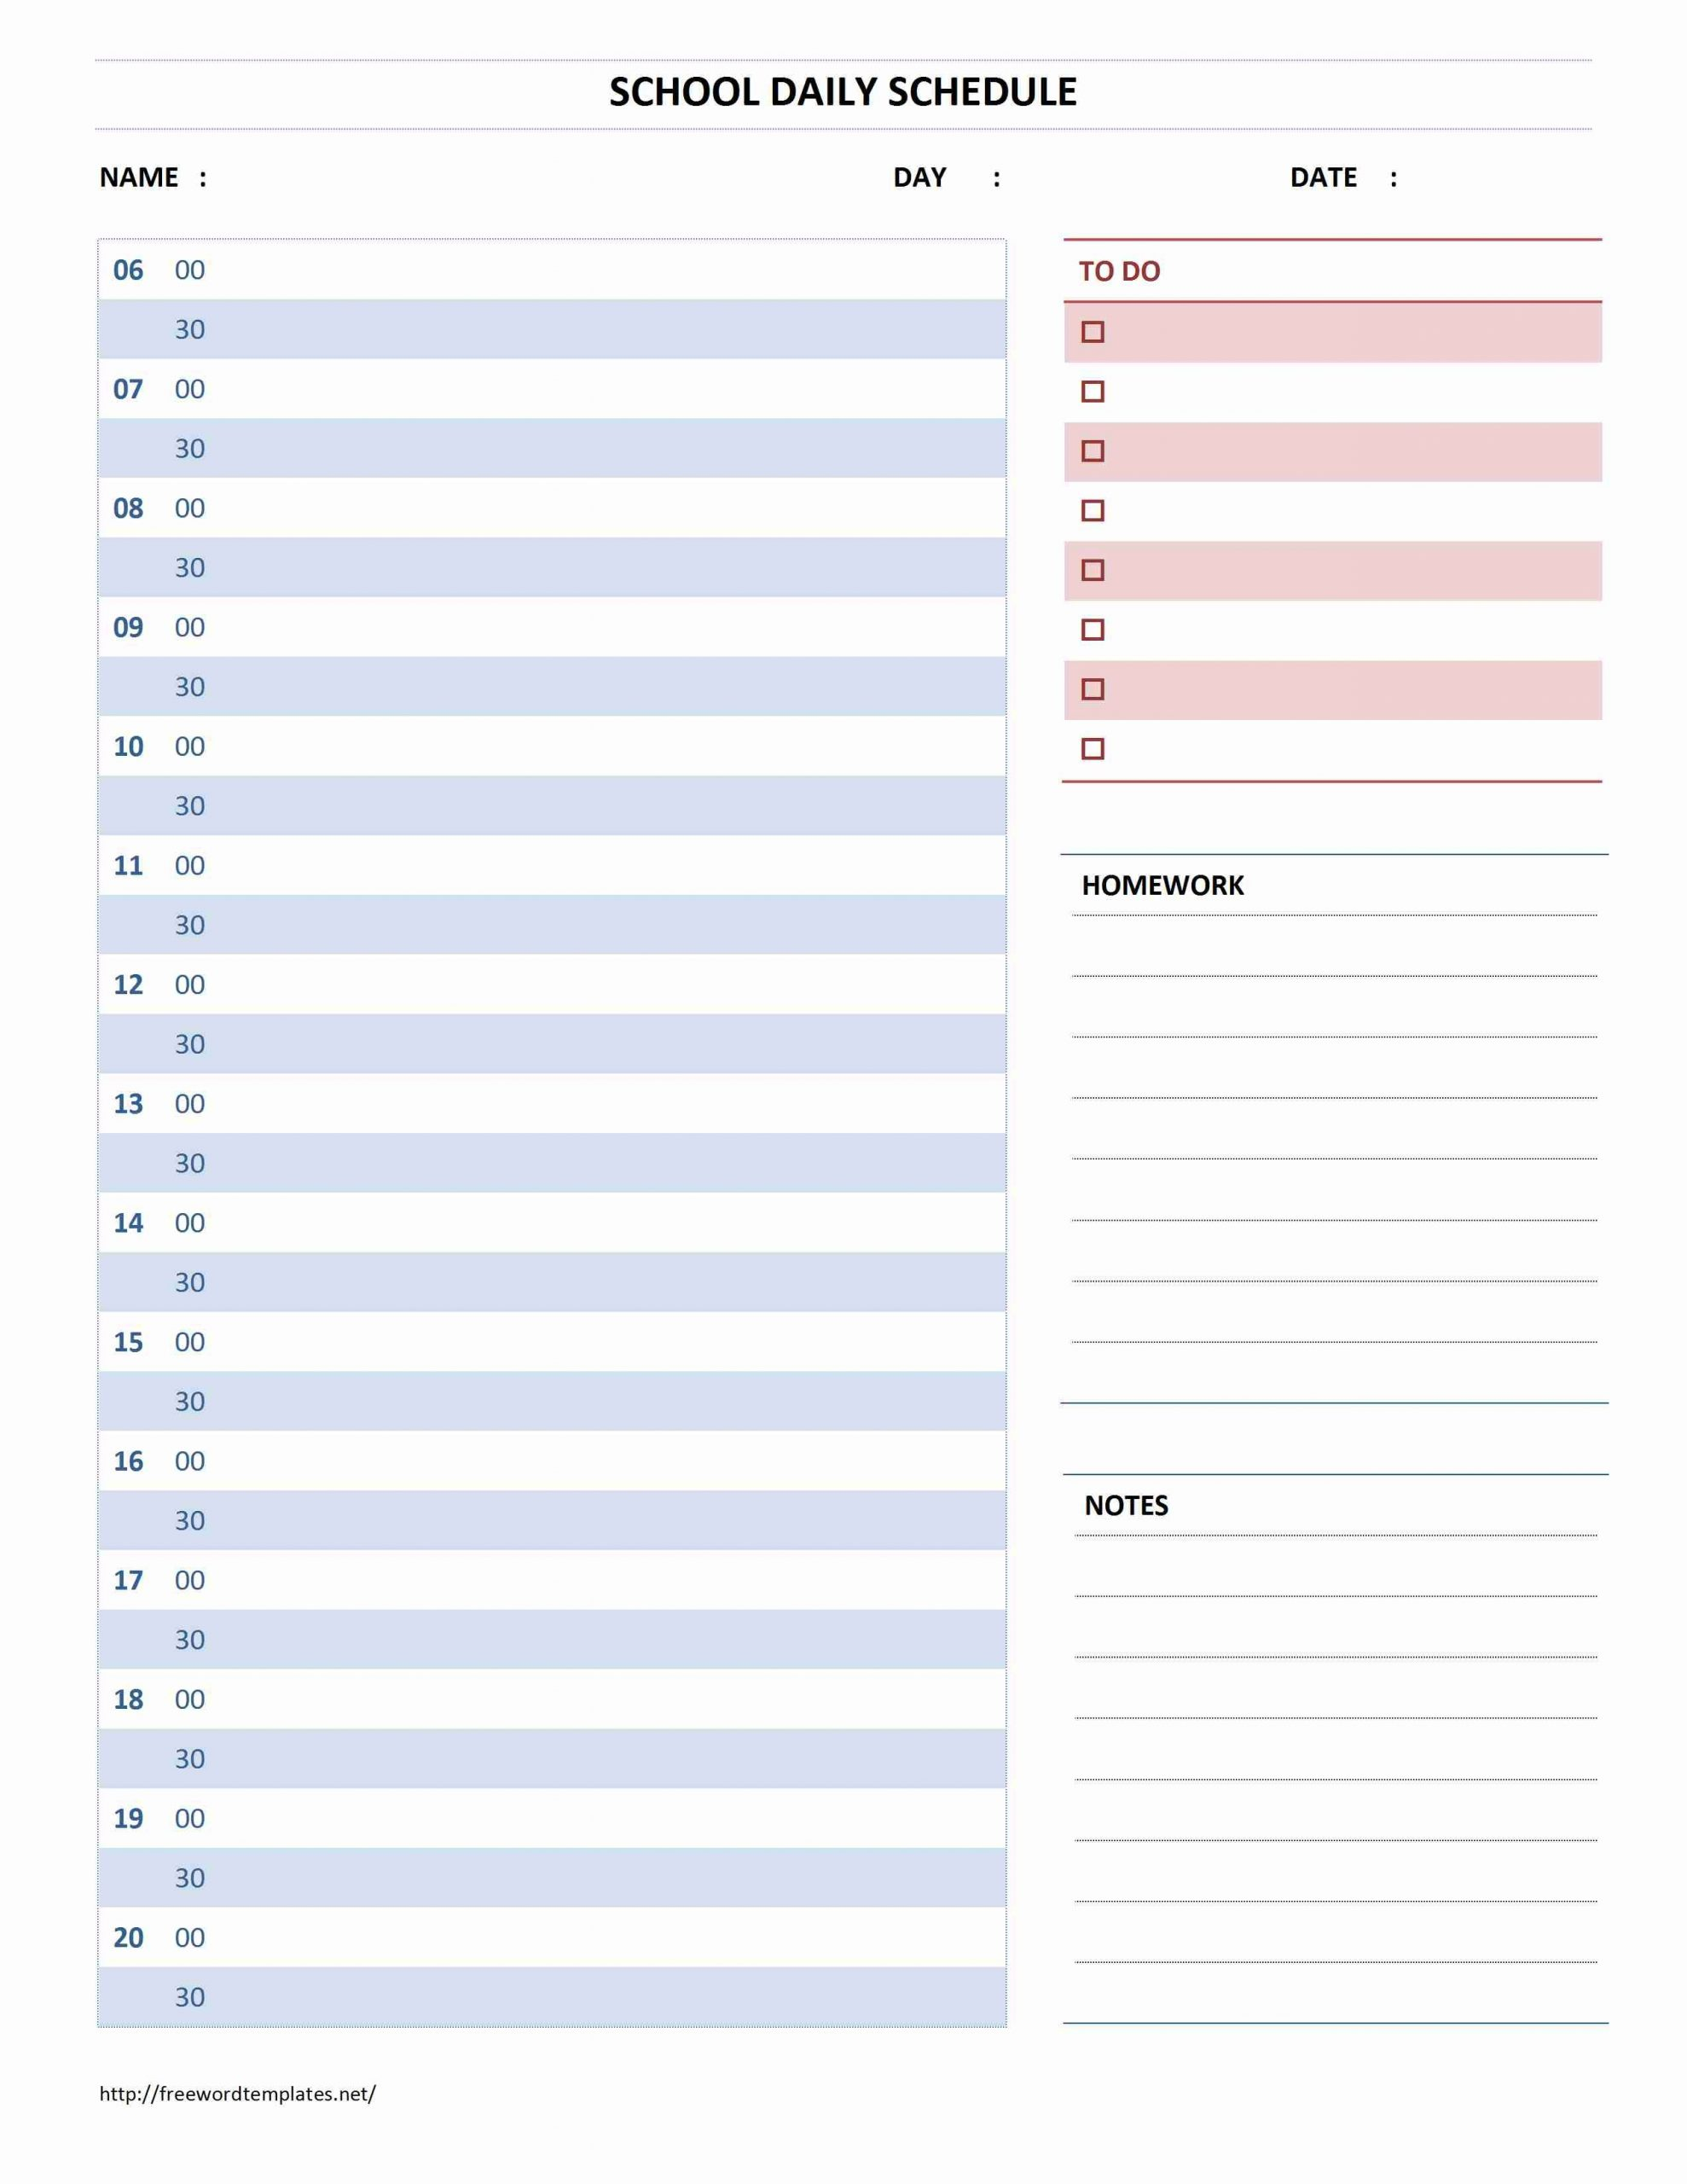 Daily Calendar Template Microsoft Word | Daily Calendar One Day Hourly Calendar Free Printable